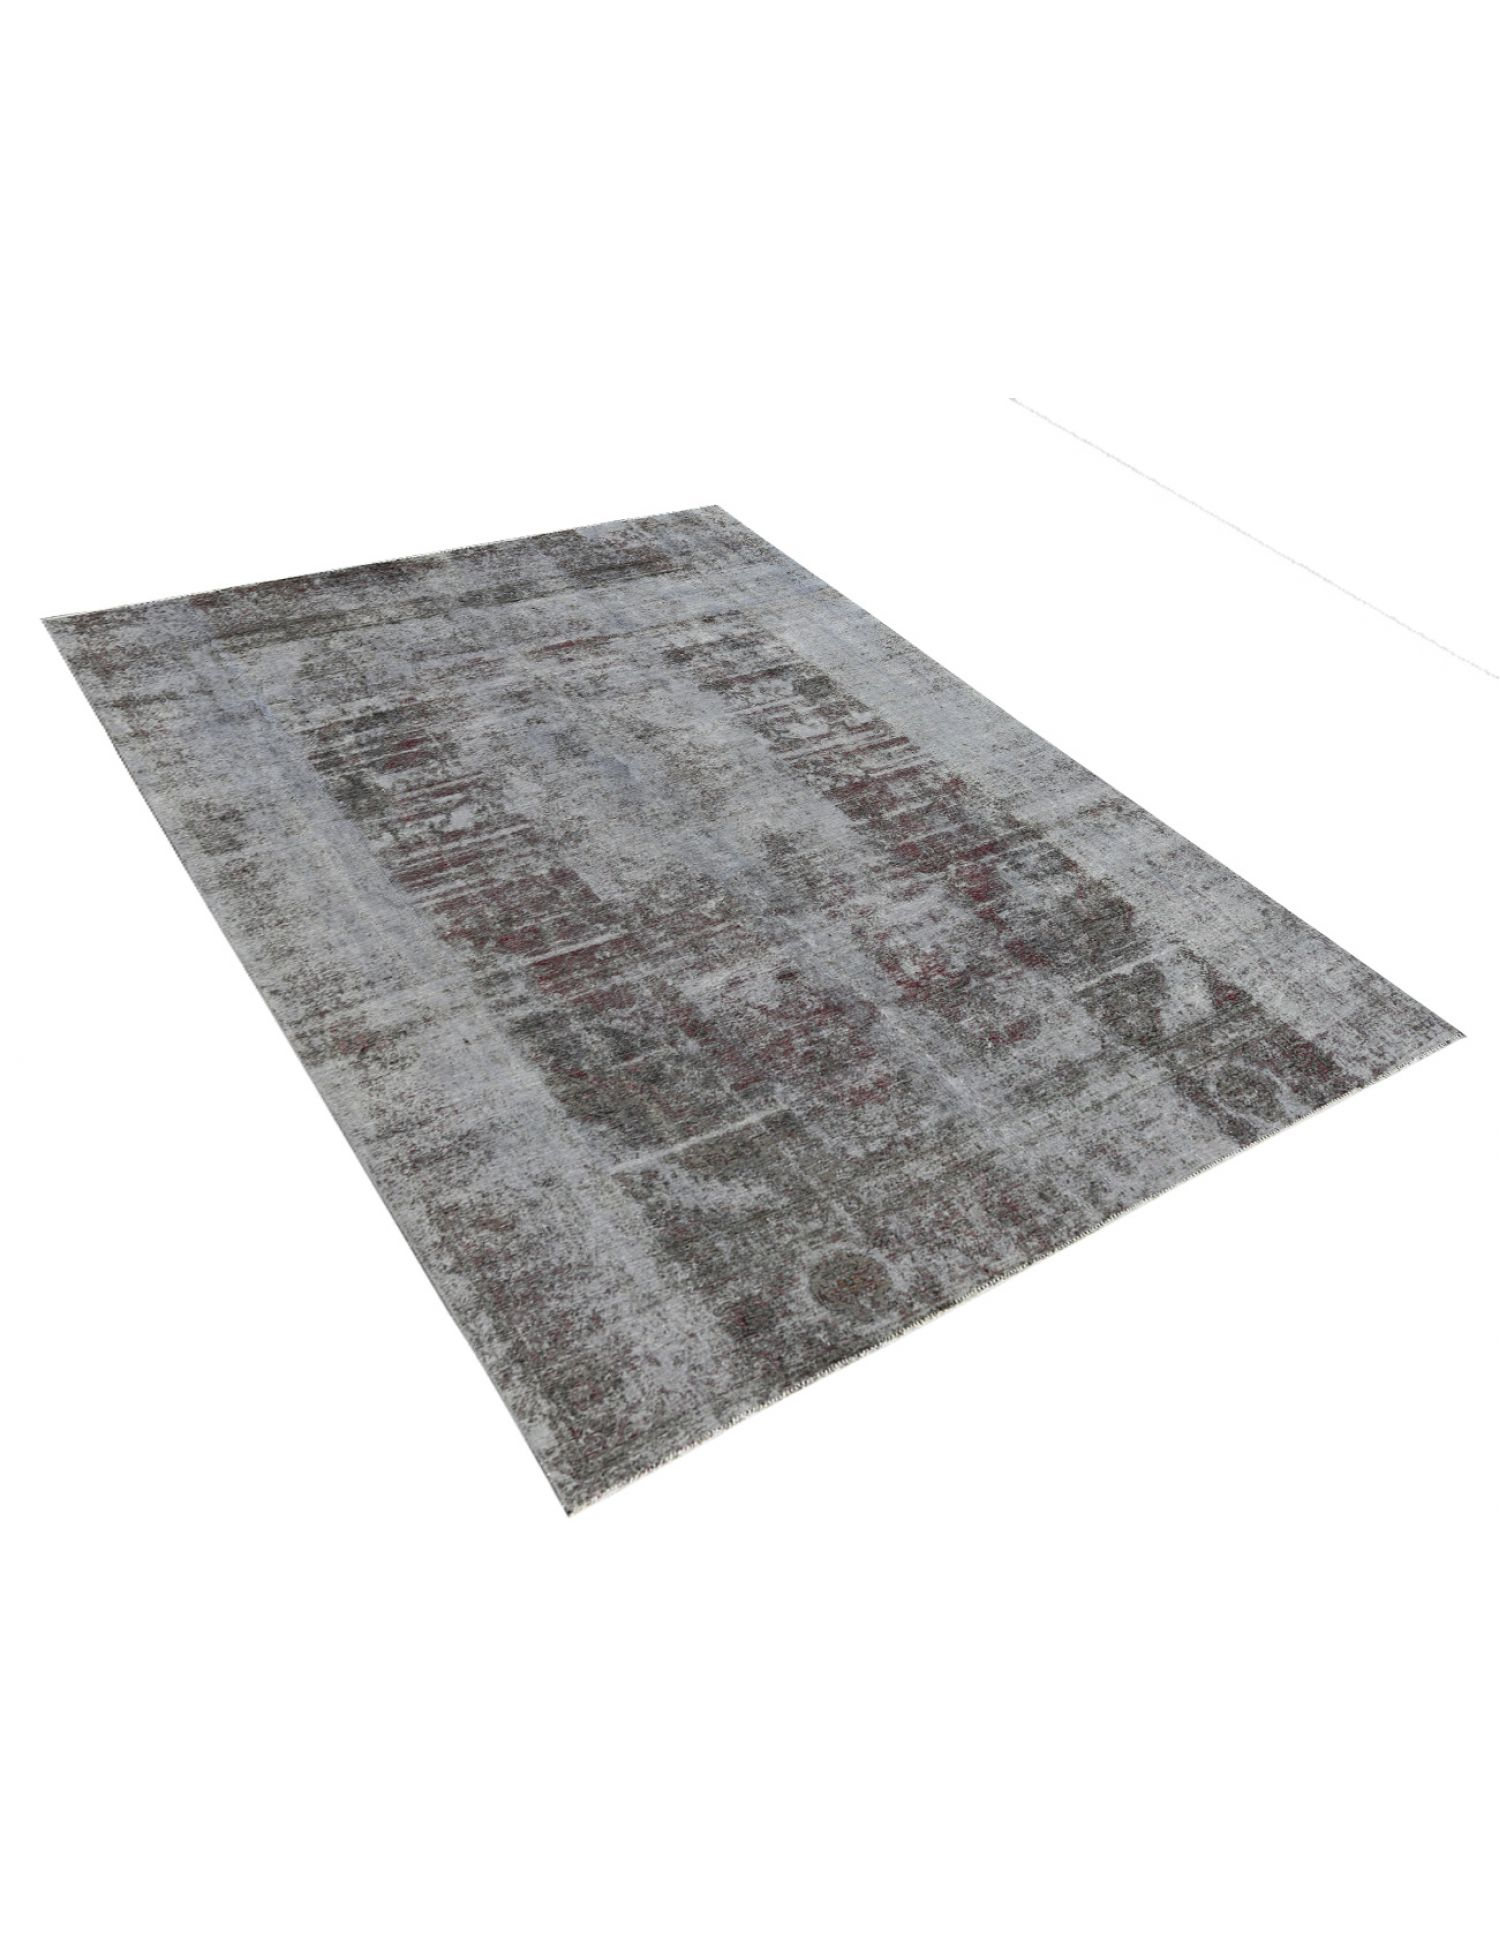 Vintage Carpet  grey <br/>357 x 285 cm